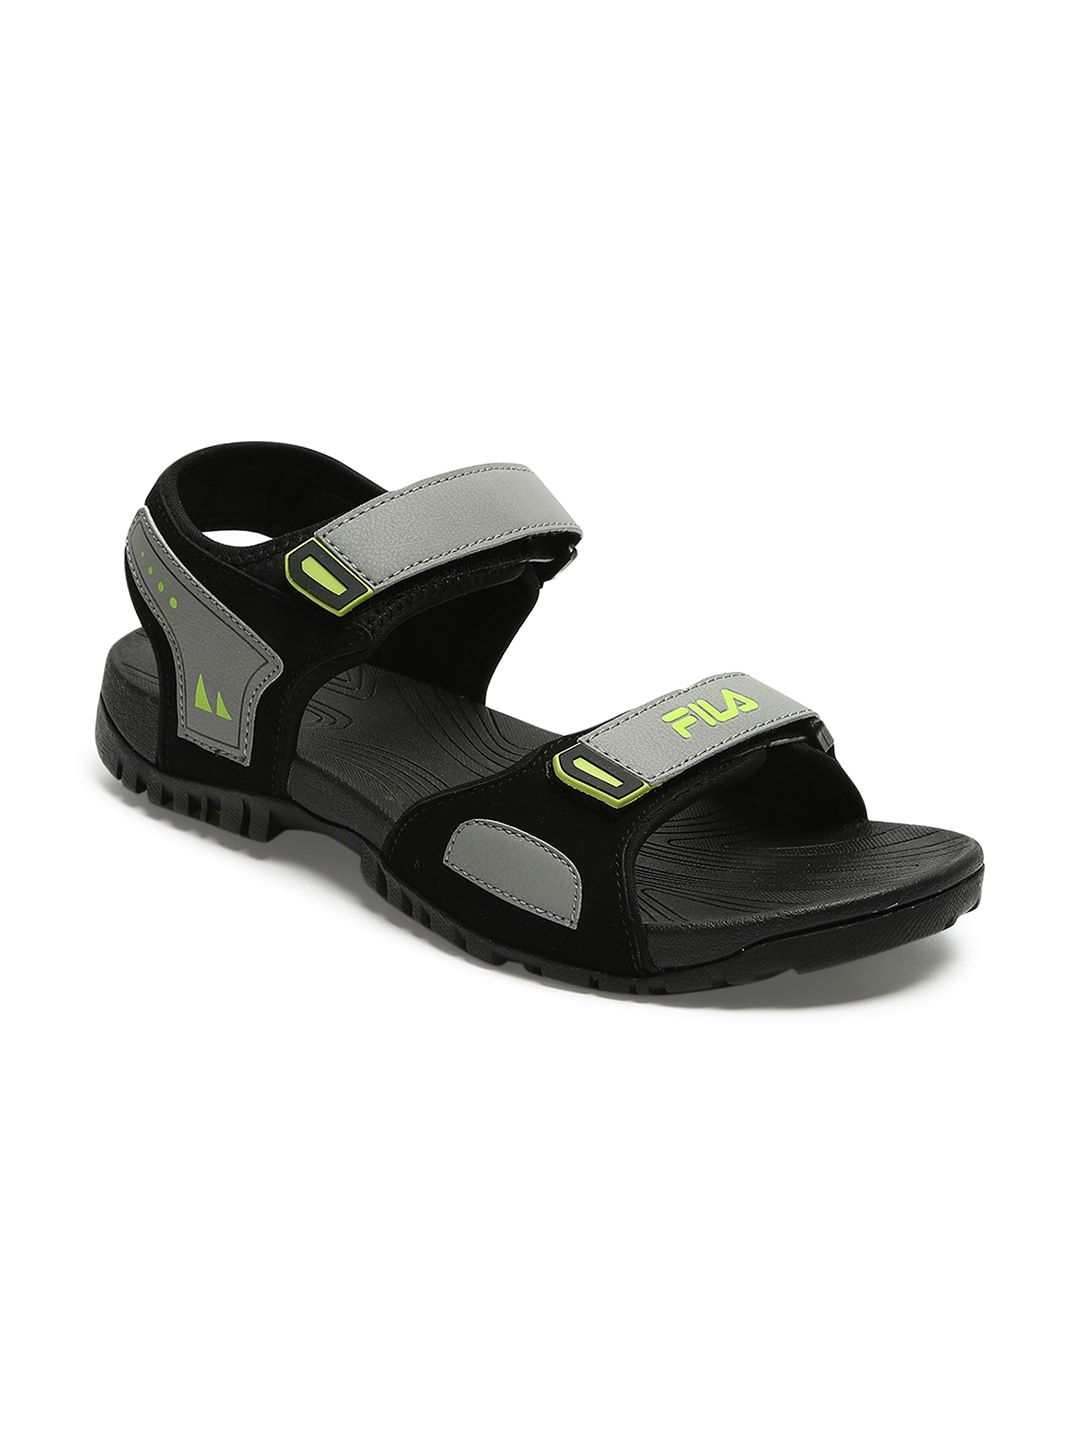 739cd4315473 Sandals - Buy Sandals Online for Men   Women in India